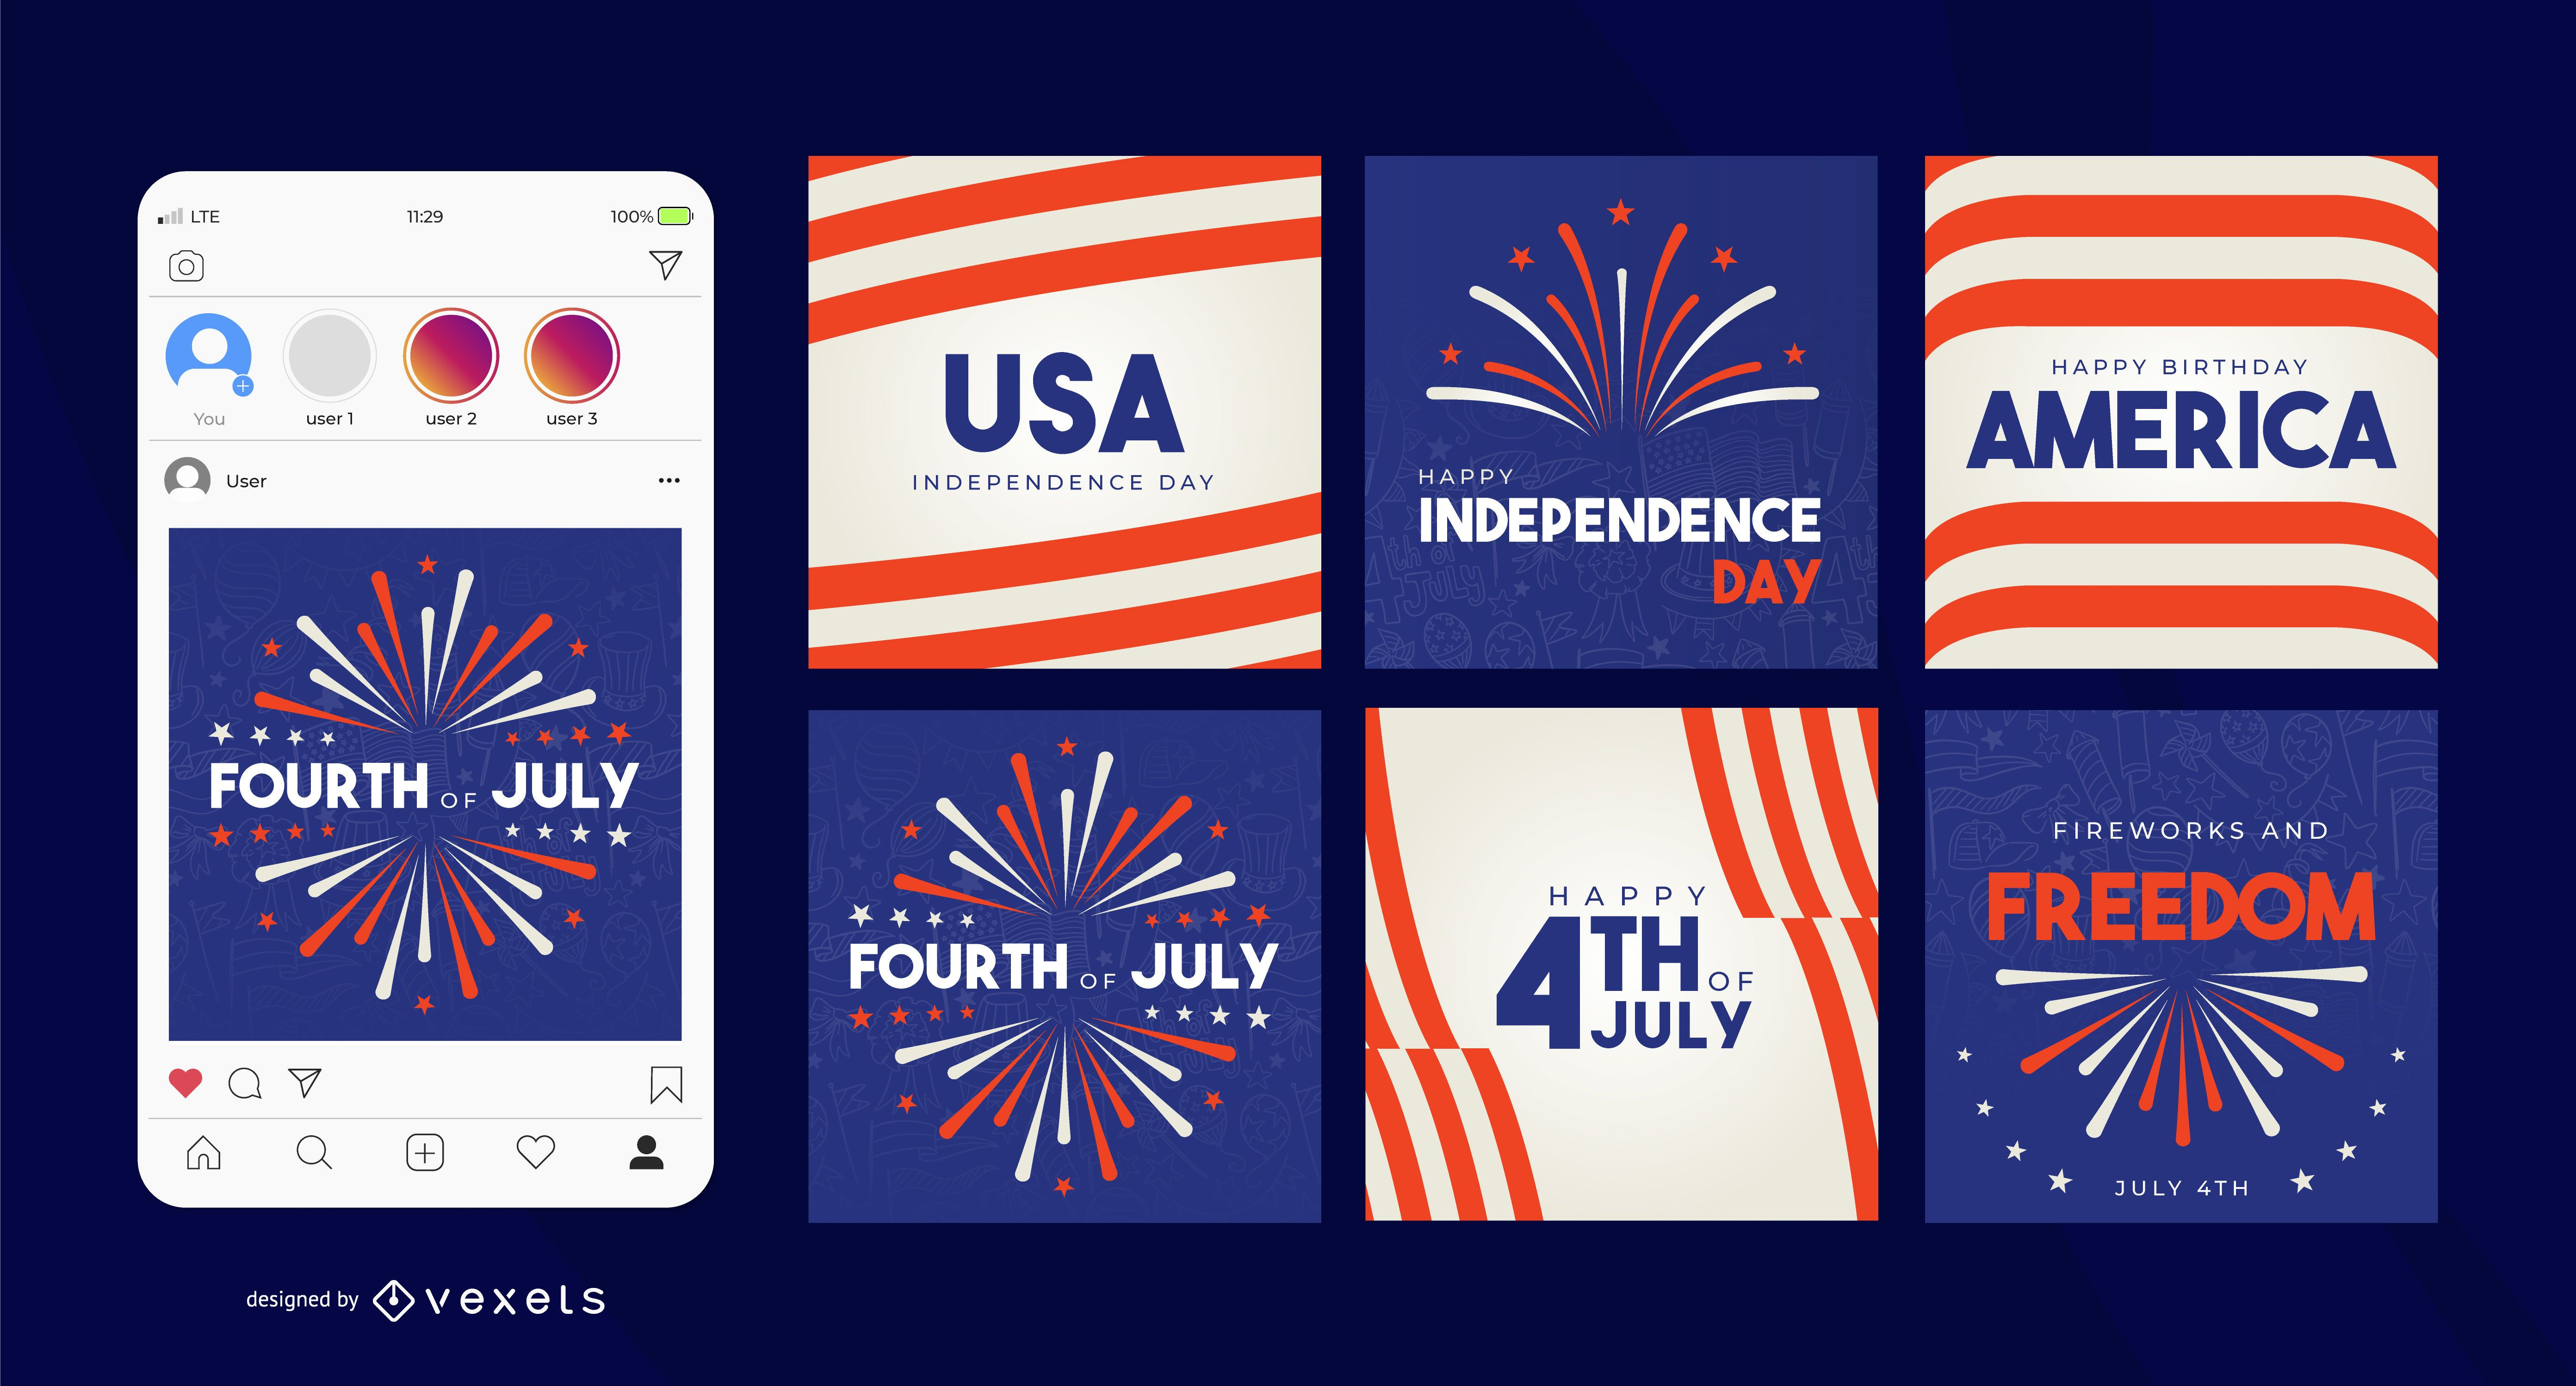 Independence day social media post